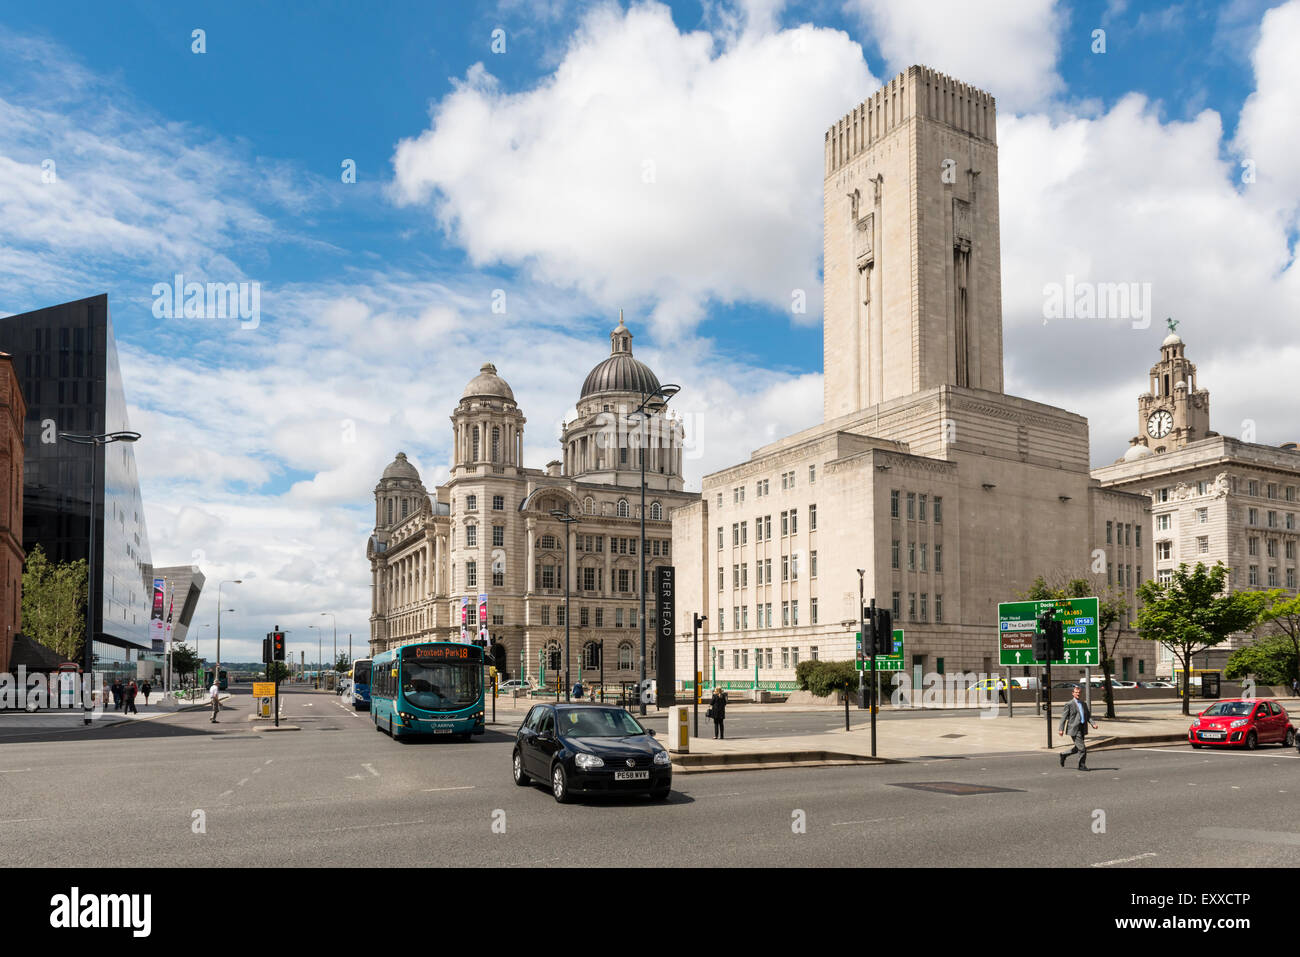 Historic buildings in the city centre of Liverpool, UK - Stock Image